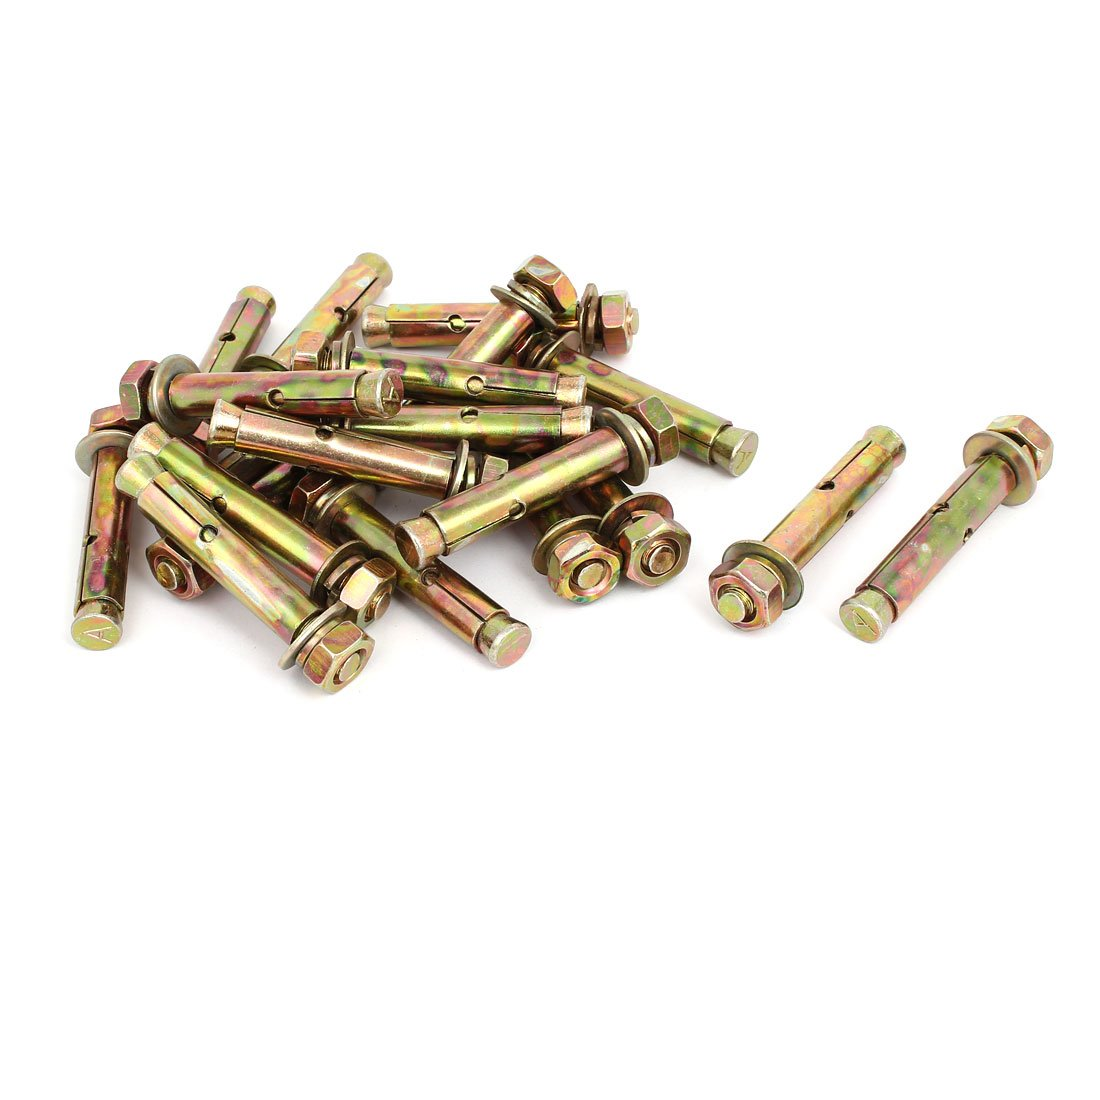 uxcell M10 Dia Thread Hex Nut Sleeve Anchors Expansion Bolt Fastener Bronze Tone 20pcs